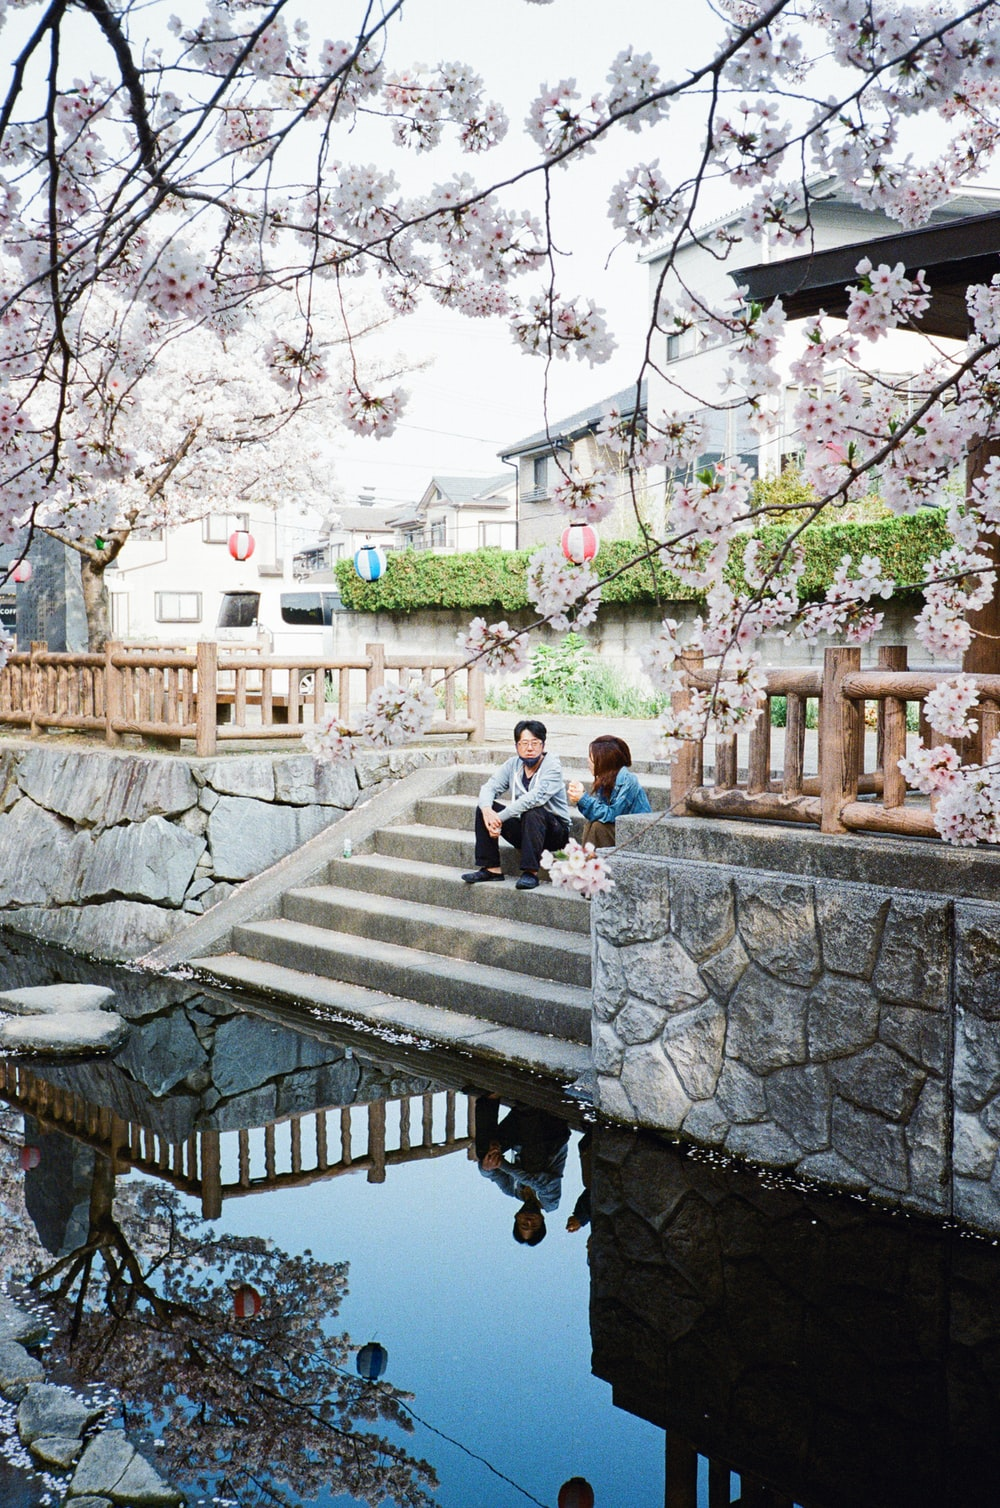 man and woman sitting on concrete bench near body of water during daytime